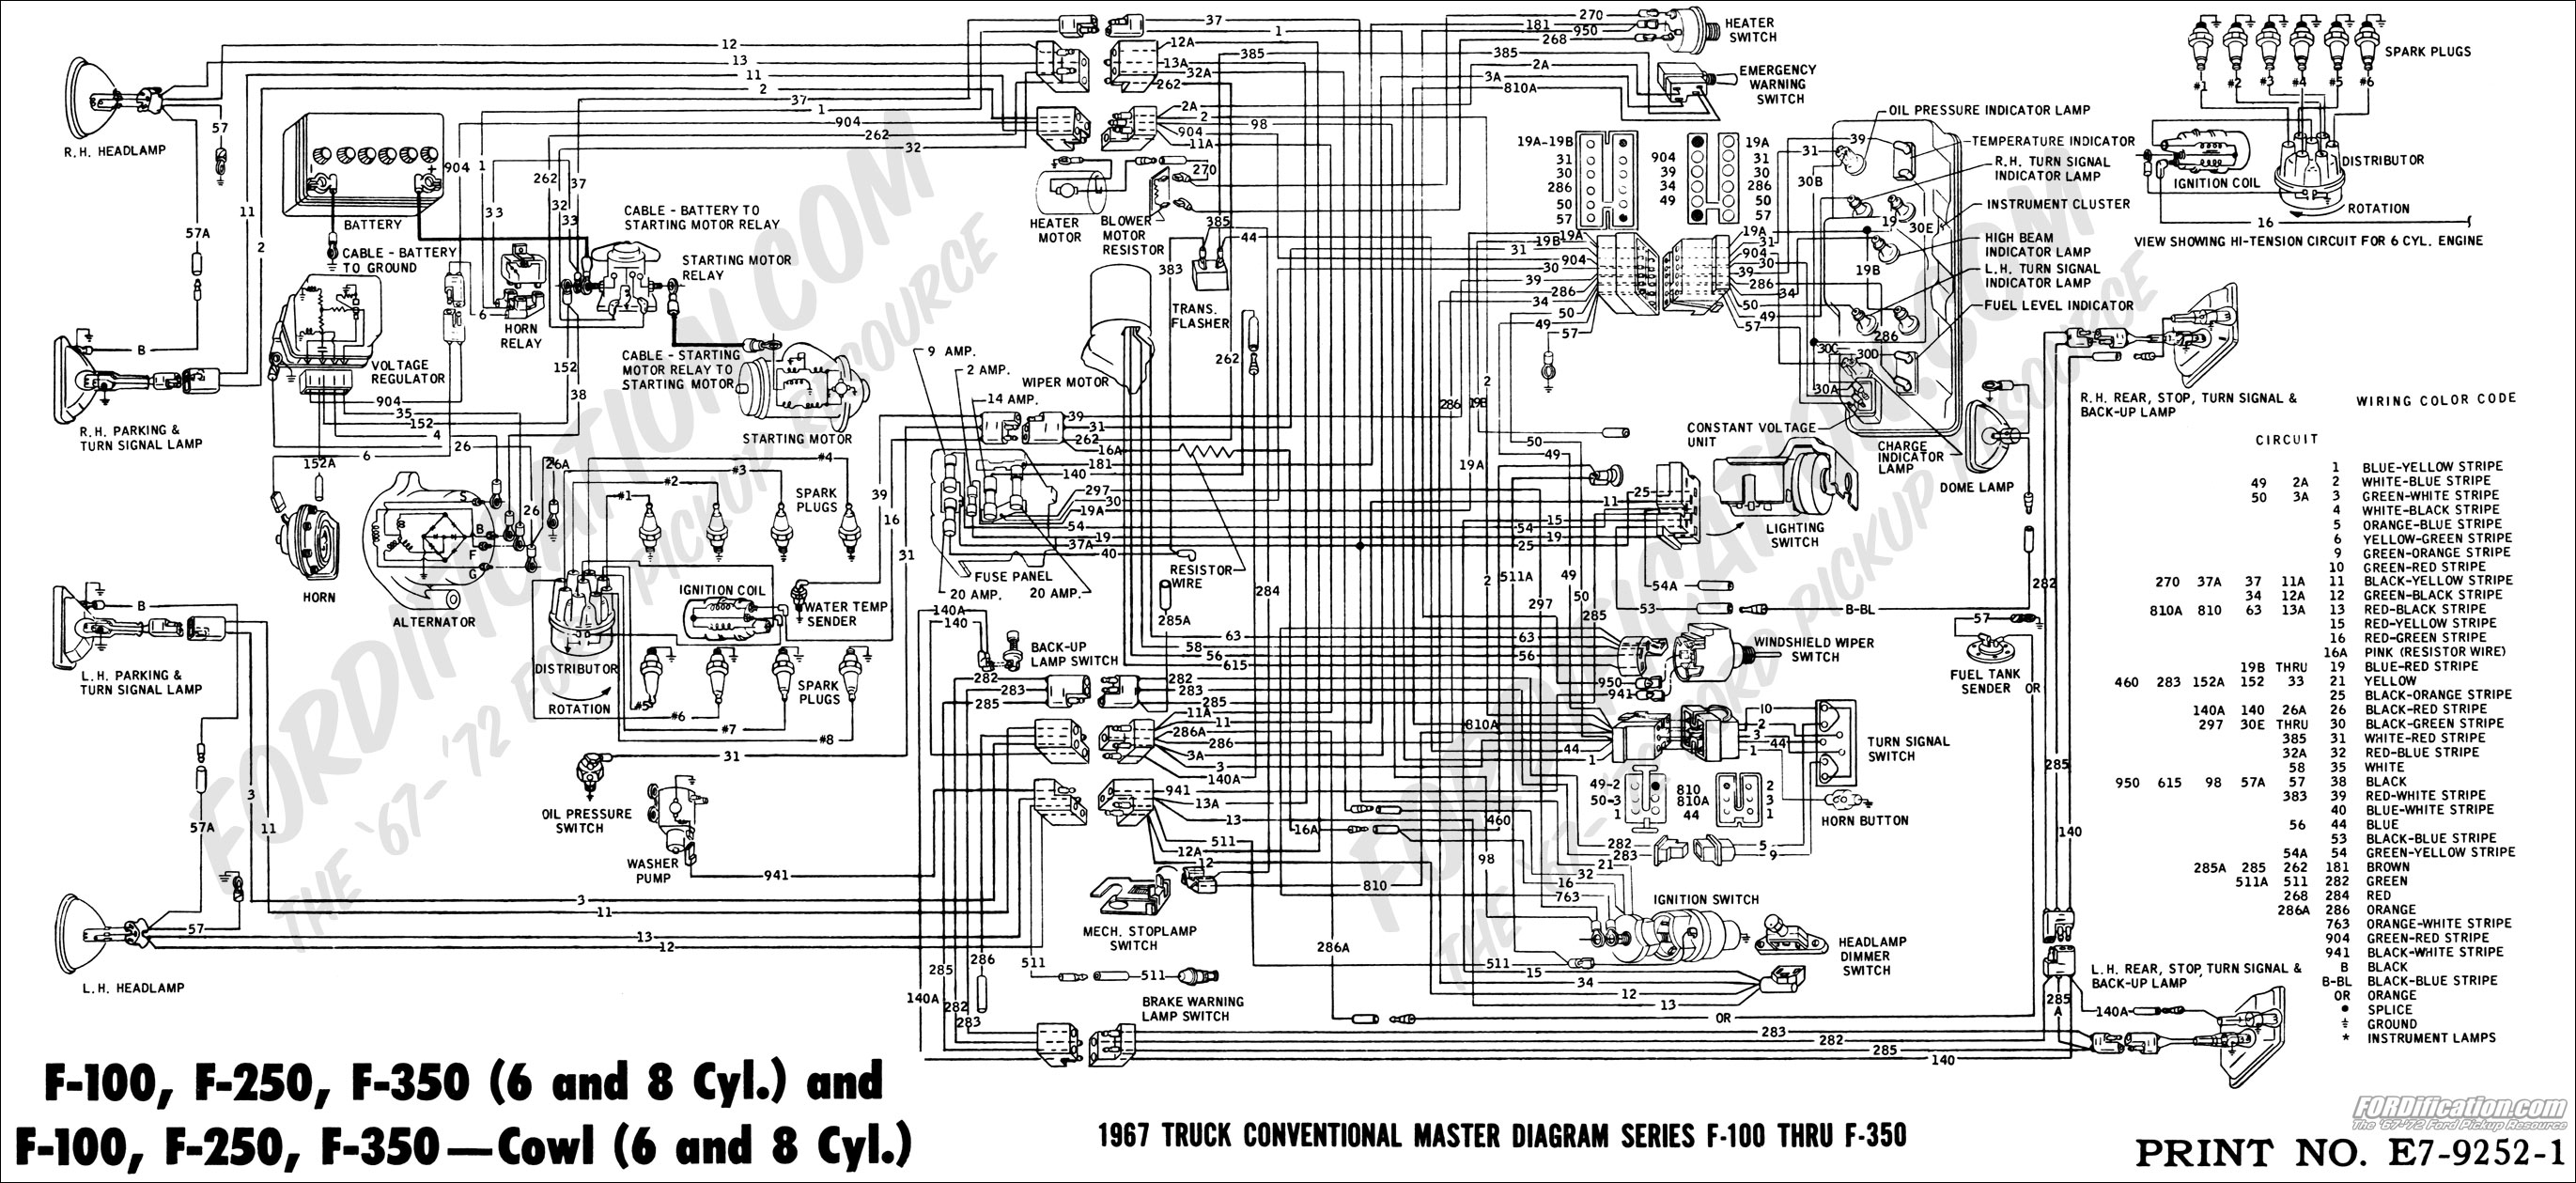 67masterdiagram 93 ford f 350 trailer wiring diagram wiring diagram simonand 2012 ford f350 wiring diagram at bayanpartner.co